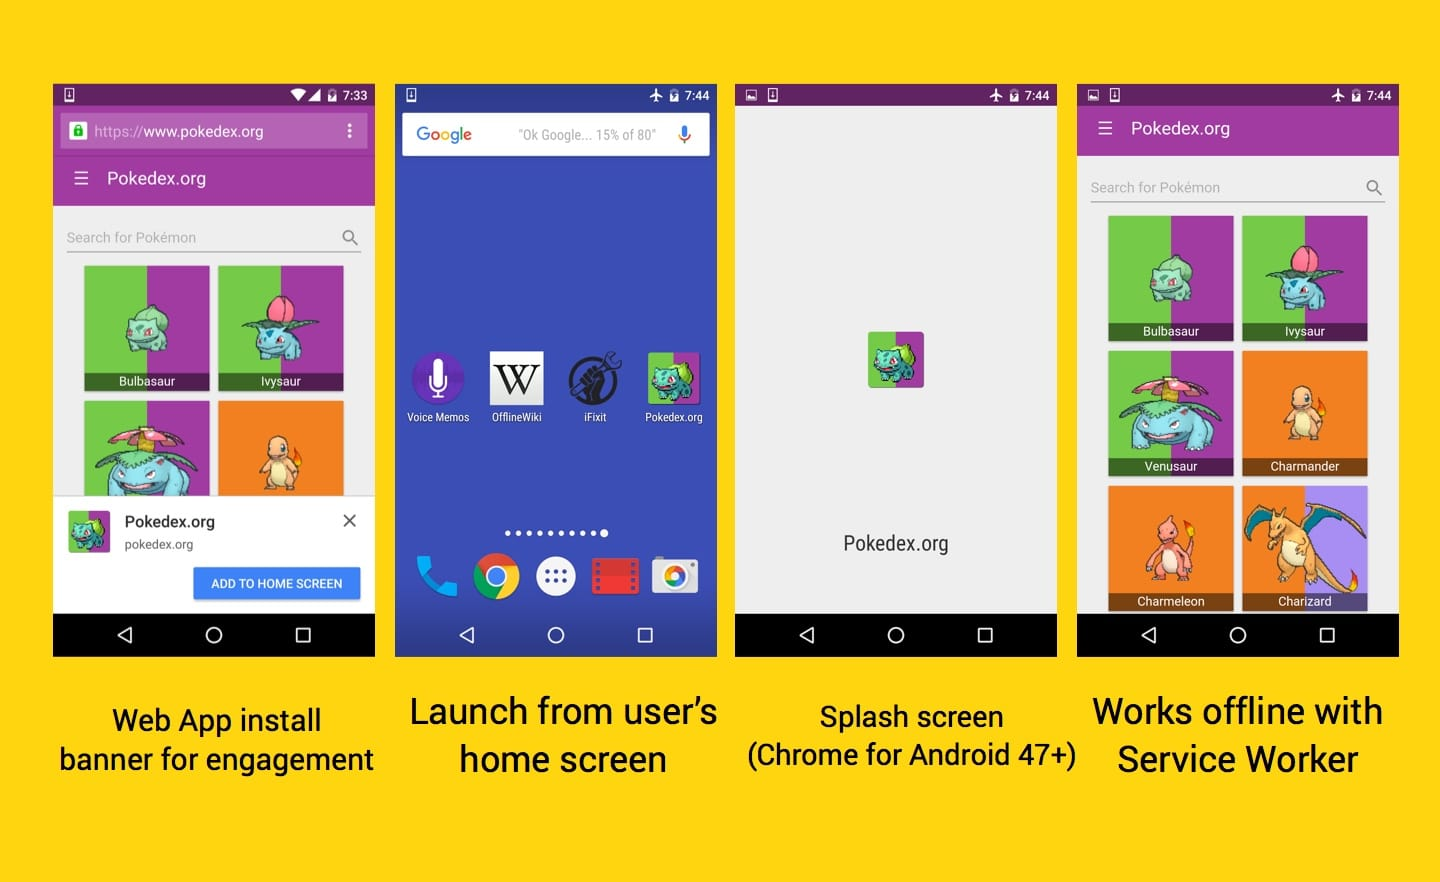 Web app install banners for engagement, launch from the user's home screen, splash screen in Chrome for Android, works offline with service worker